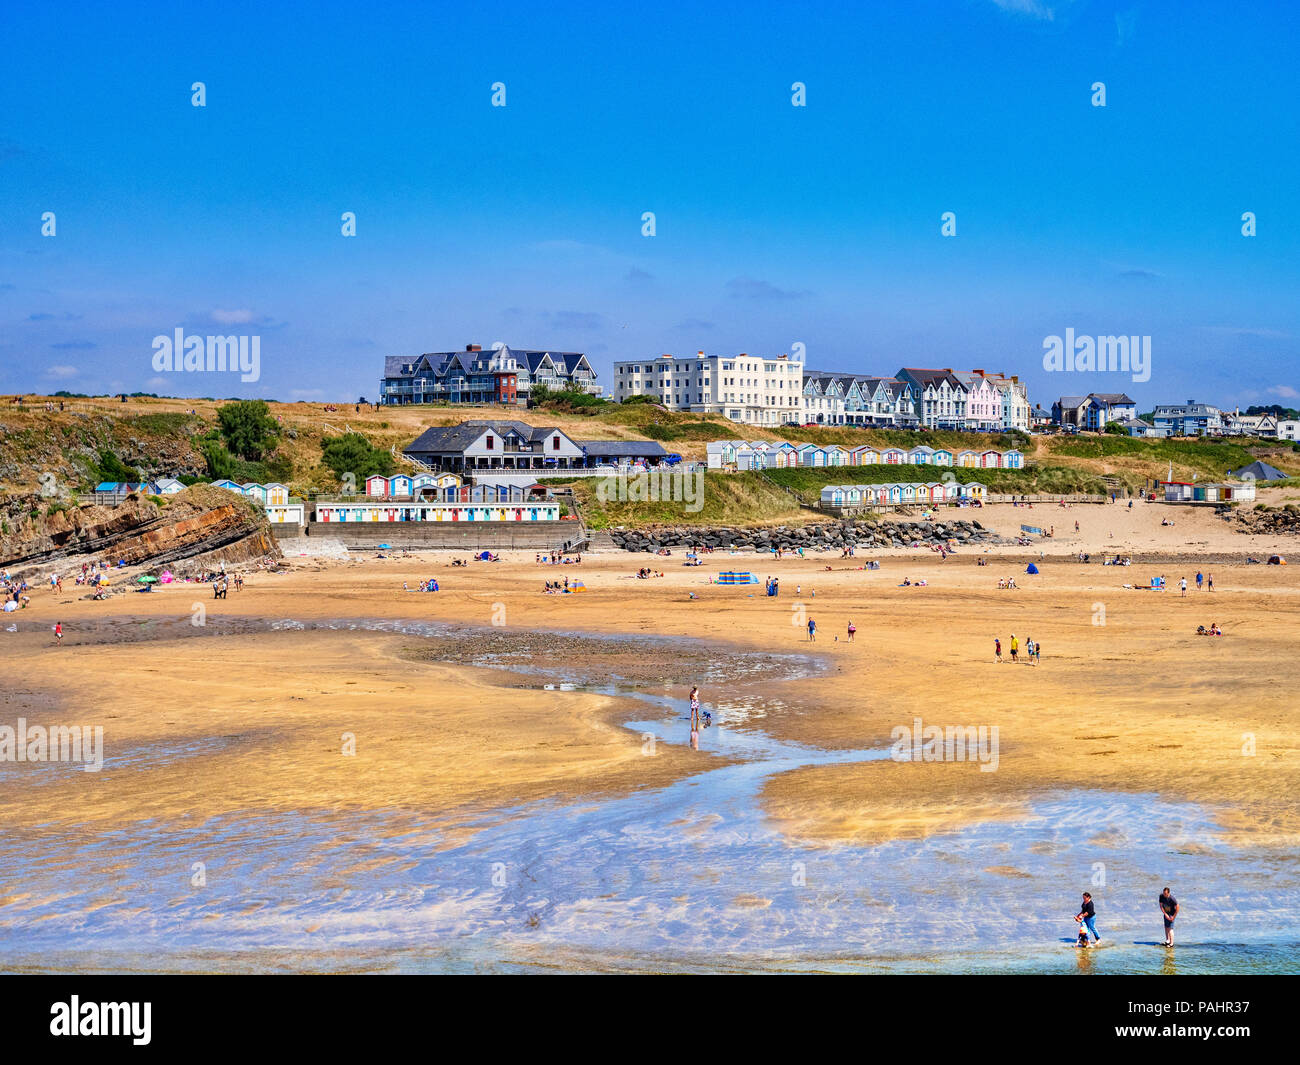 6 July 2018: Bude, Cornwall, UK - The beach during the summer heatwave. - Stock Image